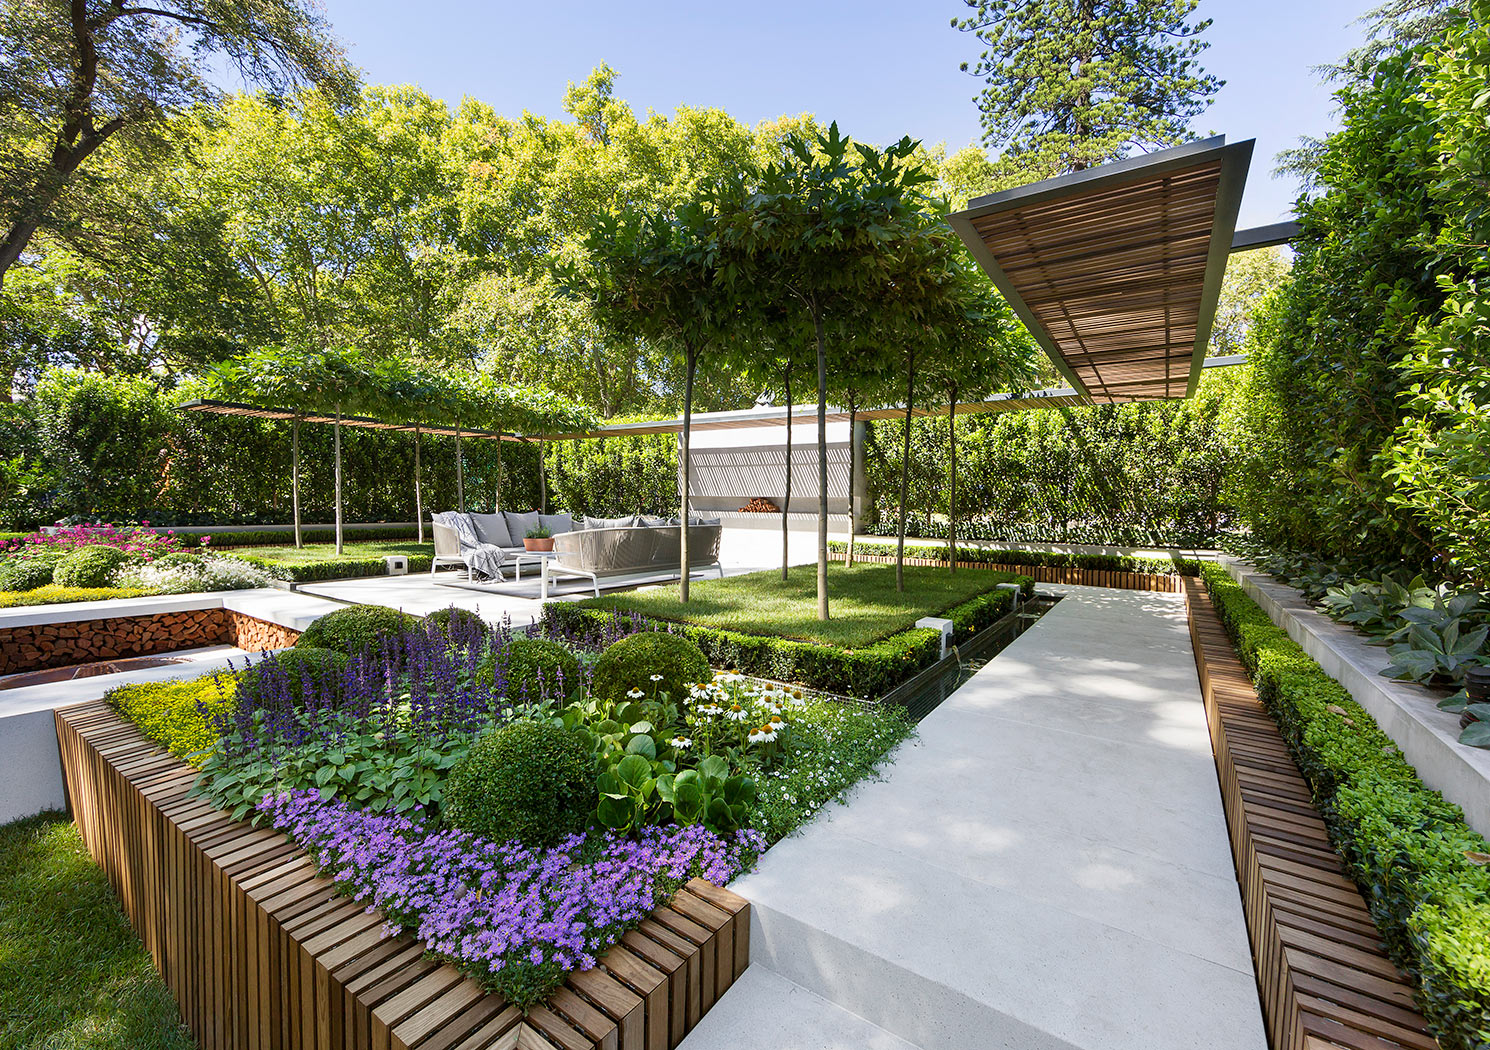 Landscape garden designer melbourne nathan burkett design for Garden and design